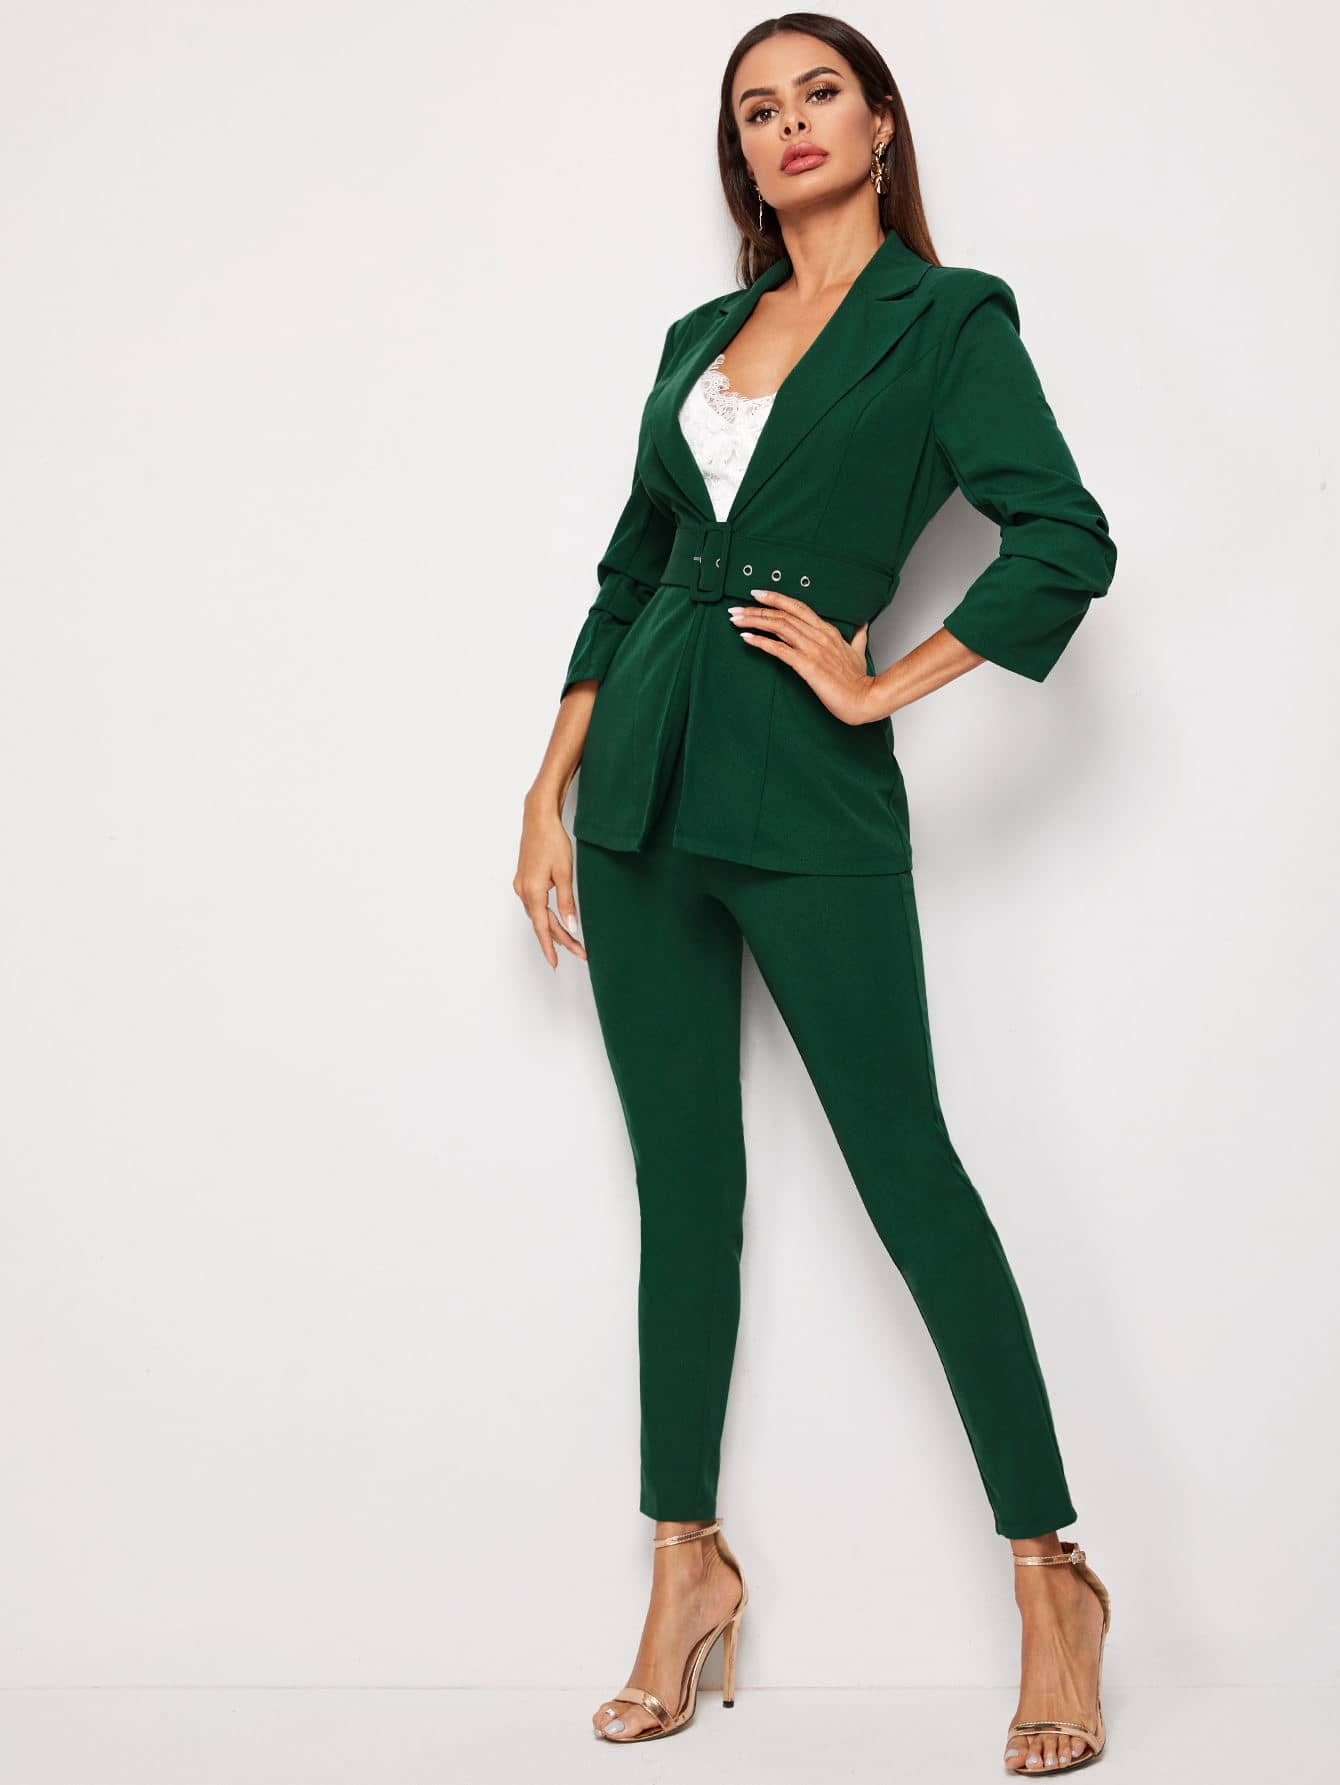 Adjustable Belted Blazer & Pants Set - FLJ CORPORATIONS